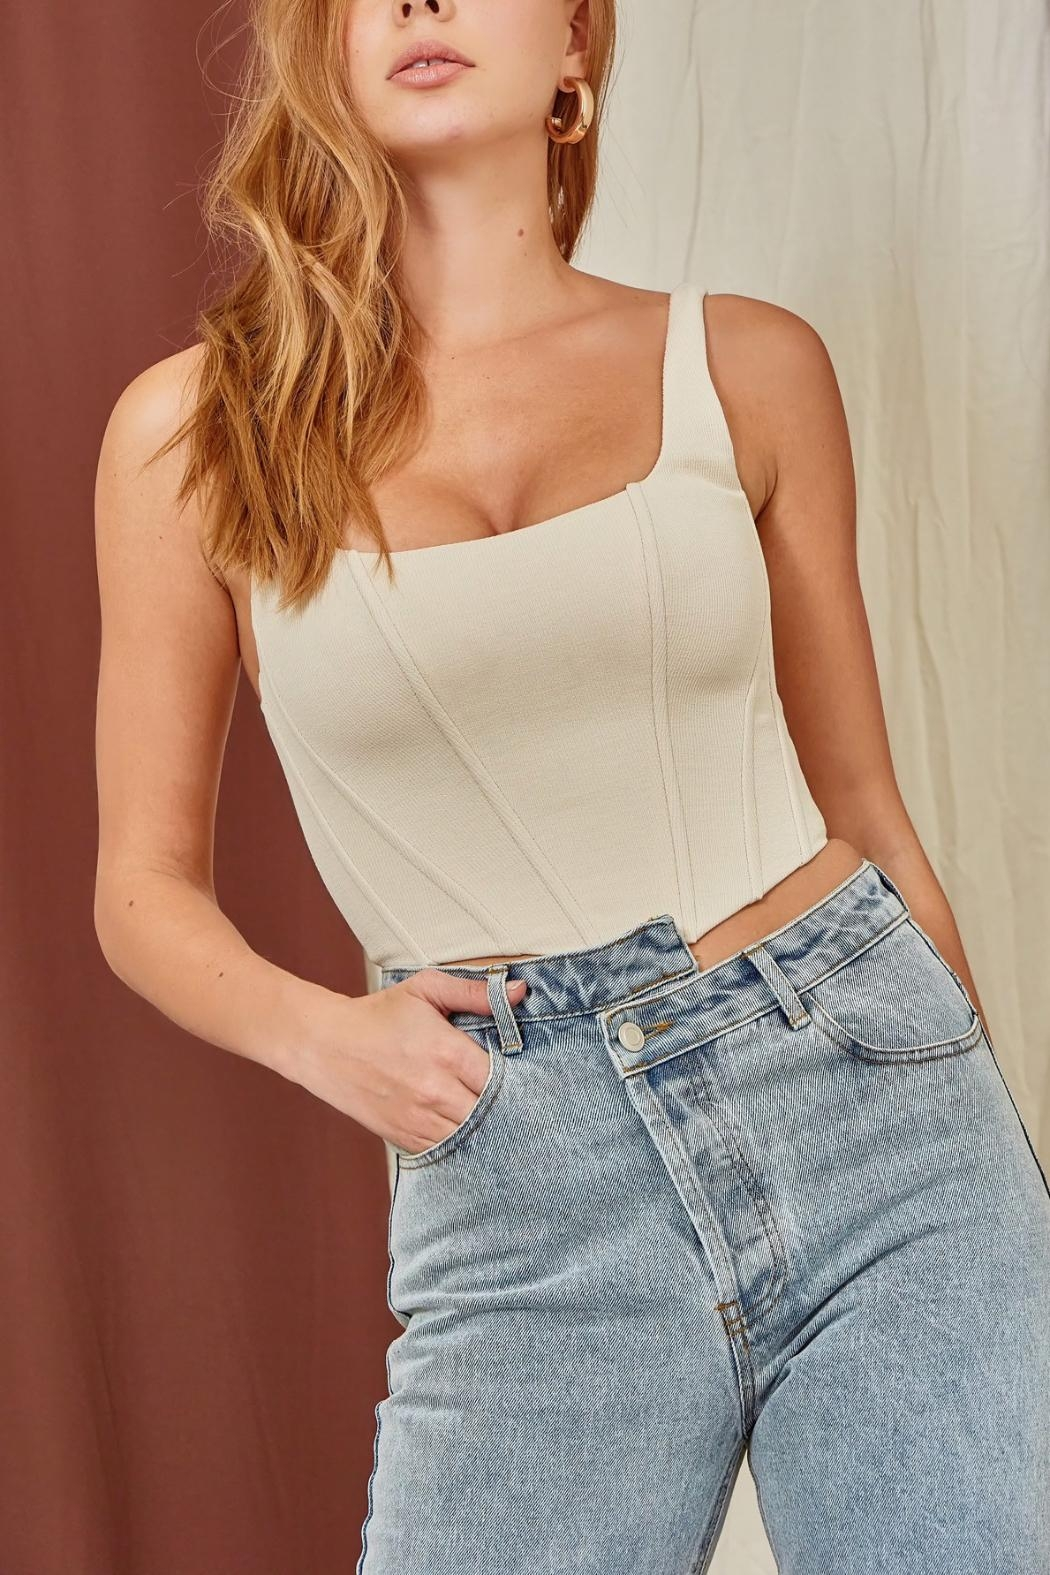 Pretty Little Things Neutral Corset Top - Front Full Image